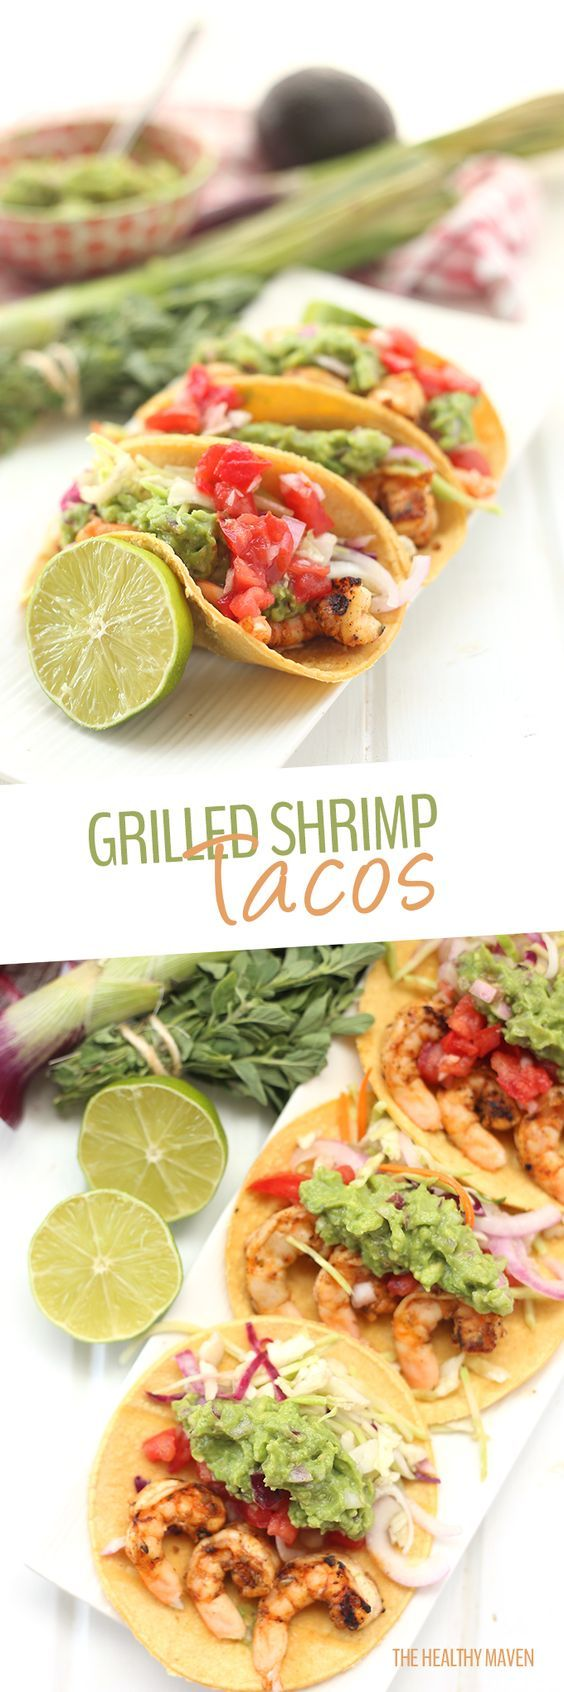 Summer calls for grills shrimp and tacos galore! Make it Mexican night with these Spicy Grilled Shrimp Tacos with all the fixins for your next summer bbq or party! No one will believe you that they're healthy too!